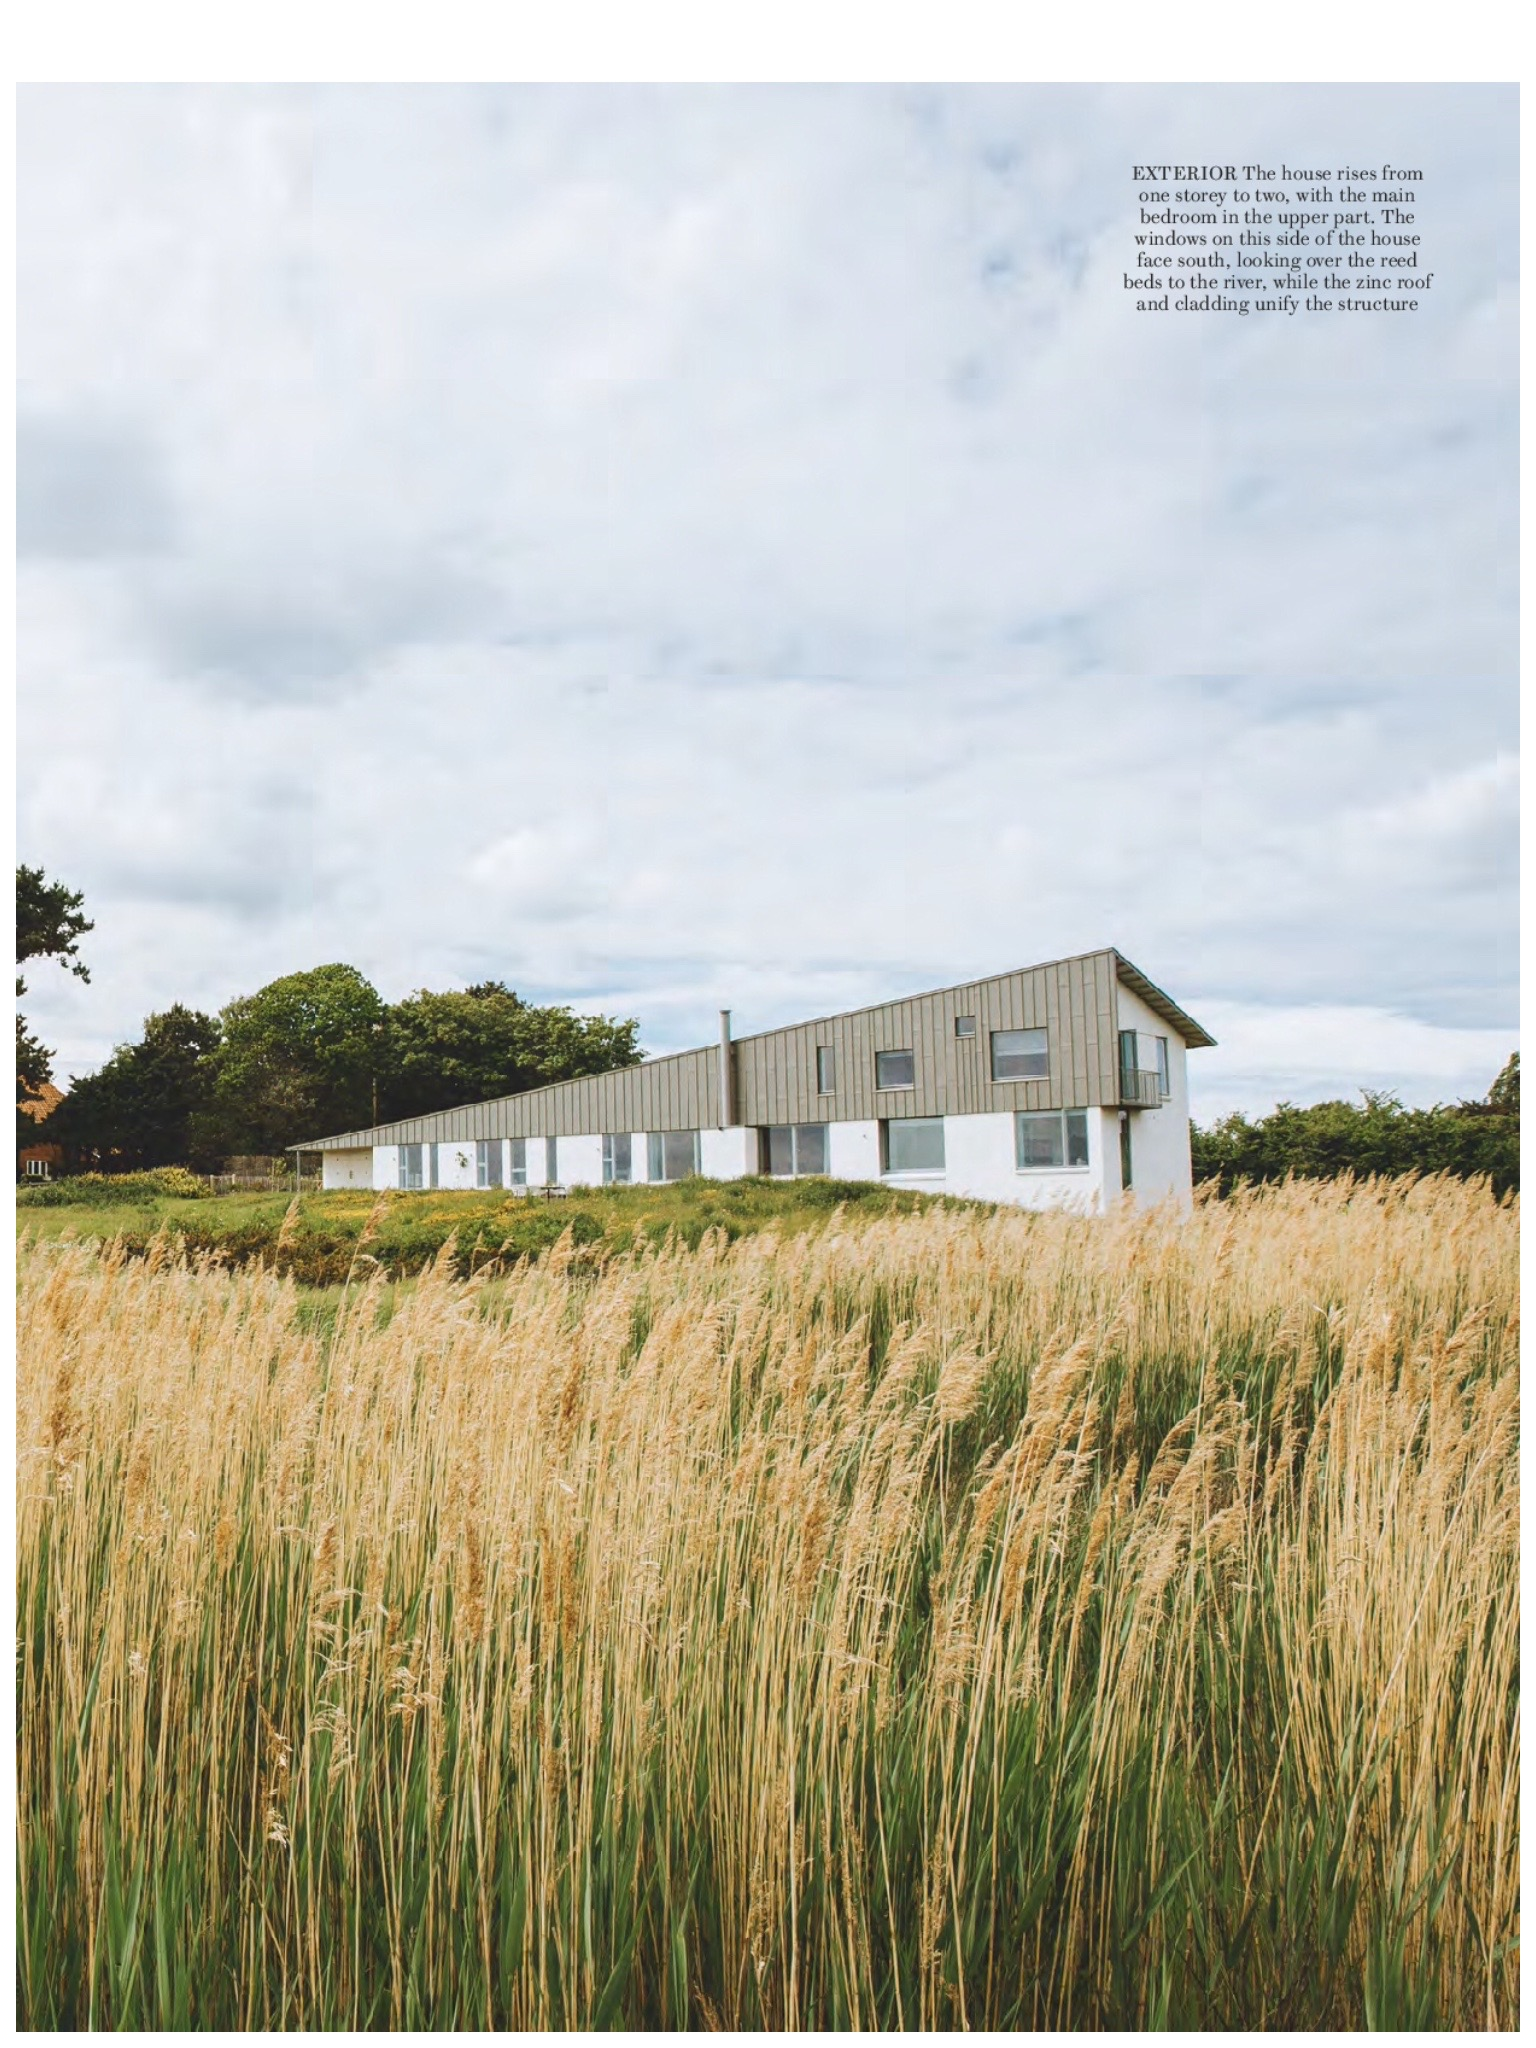 House overlooking the Aldeburgh marshes, Mole Architects